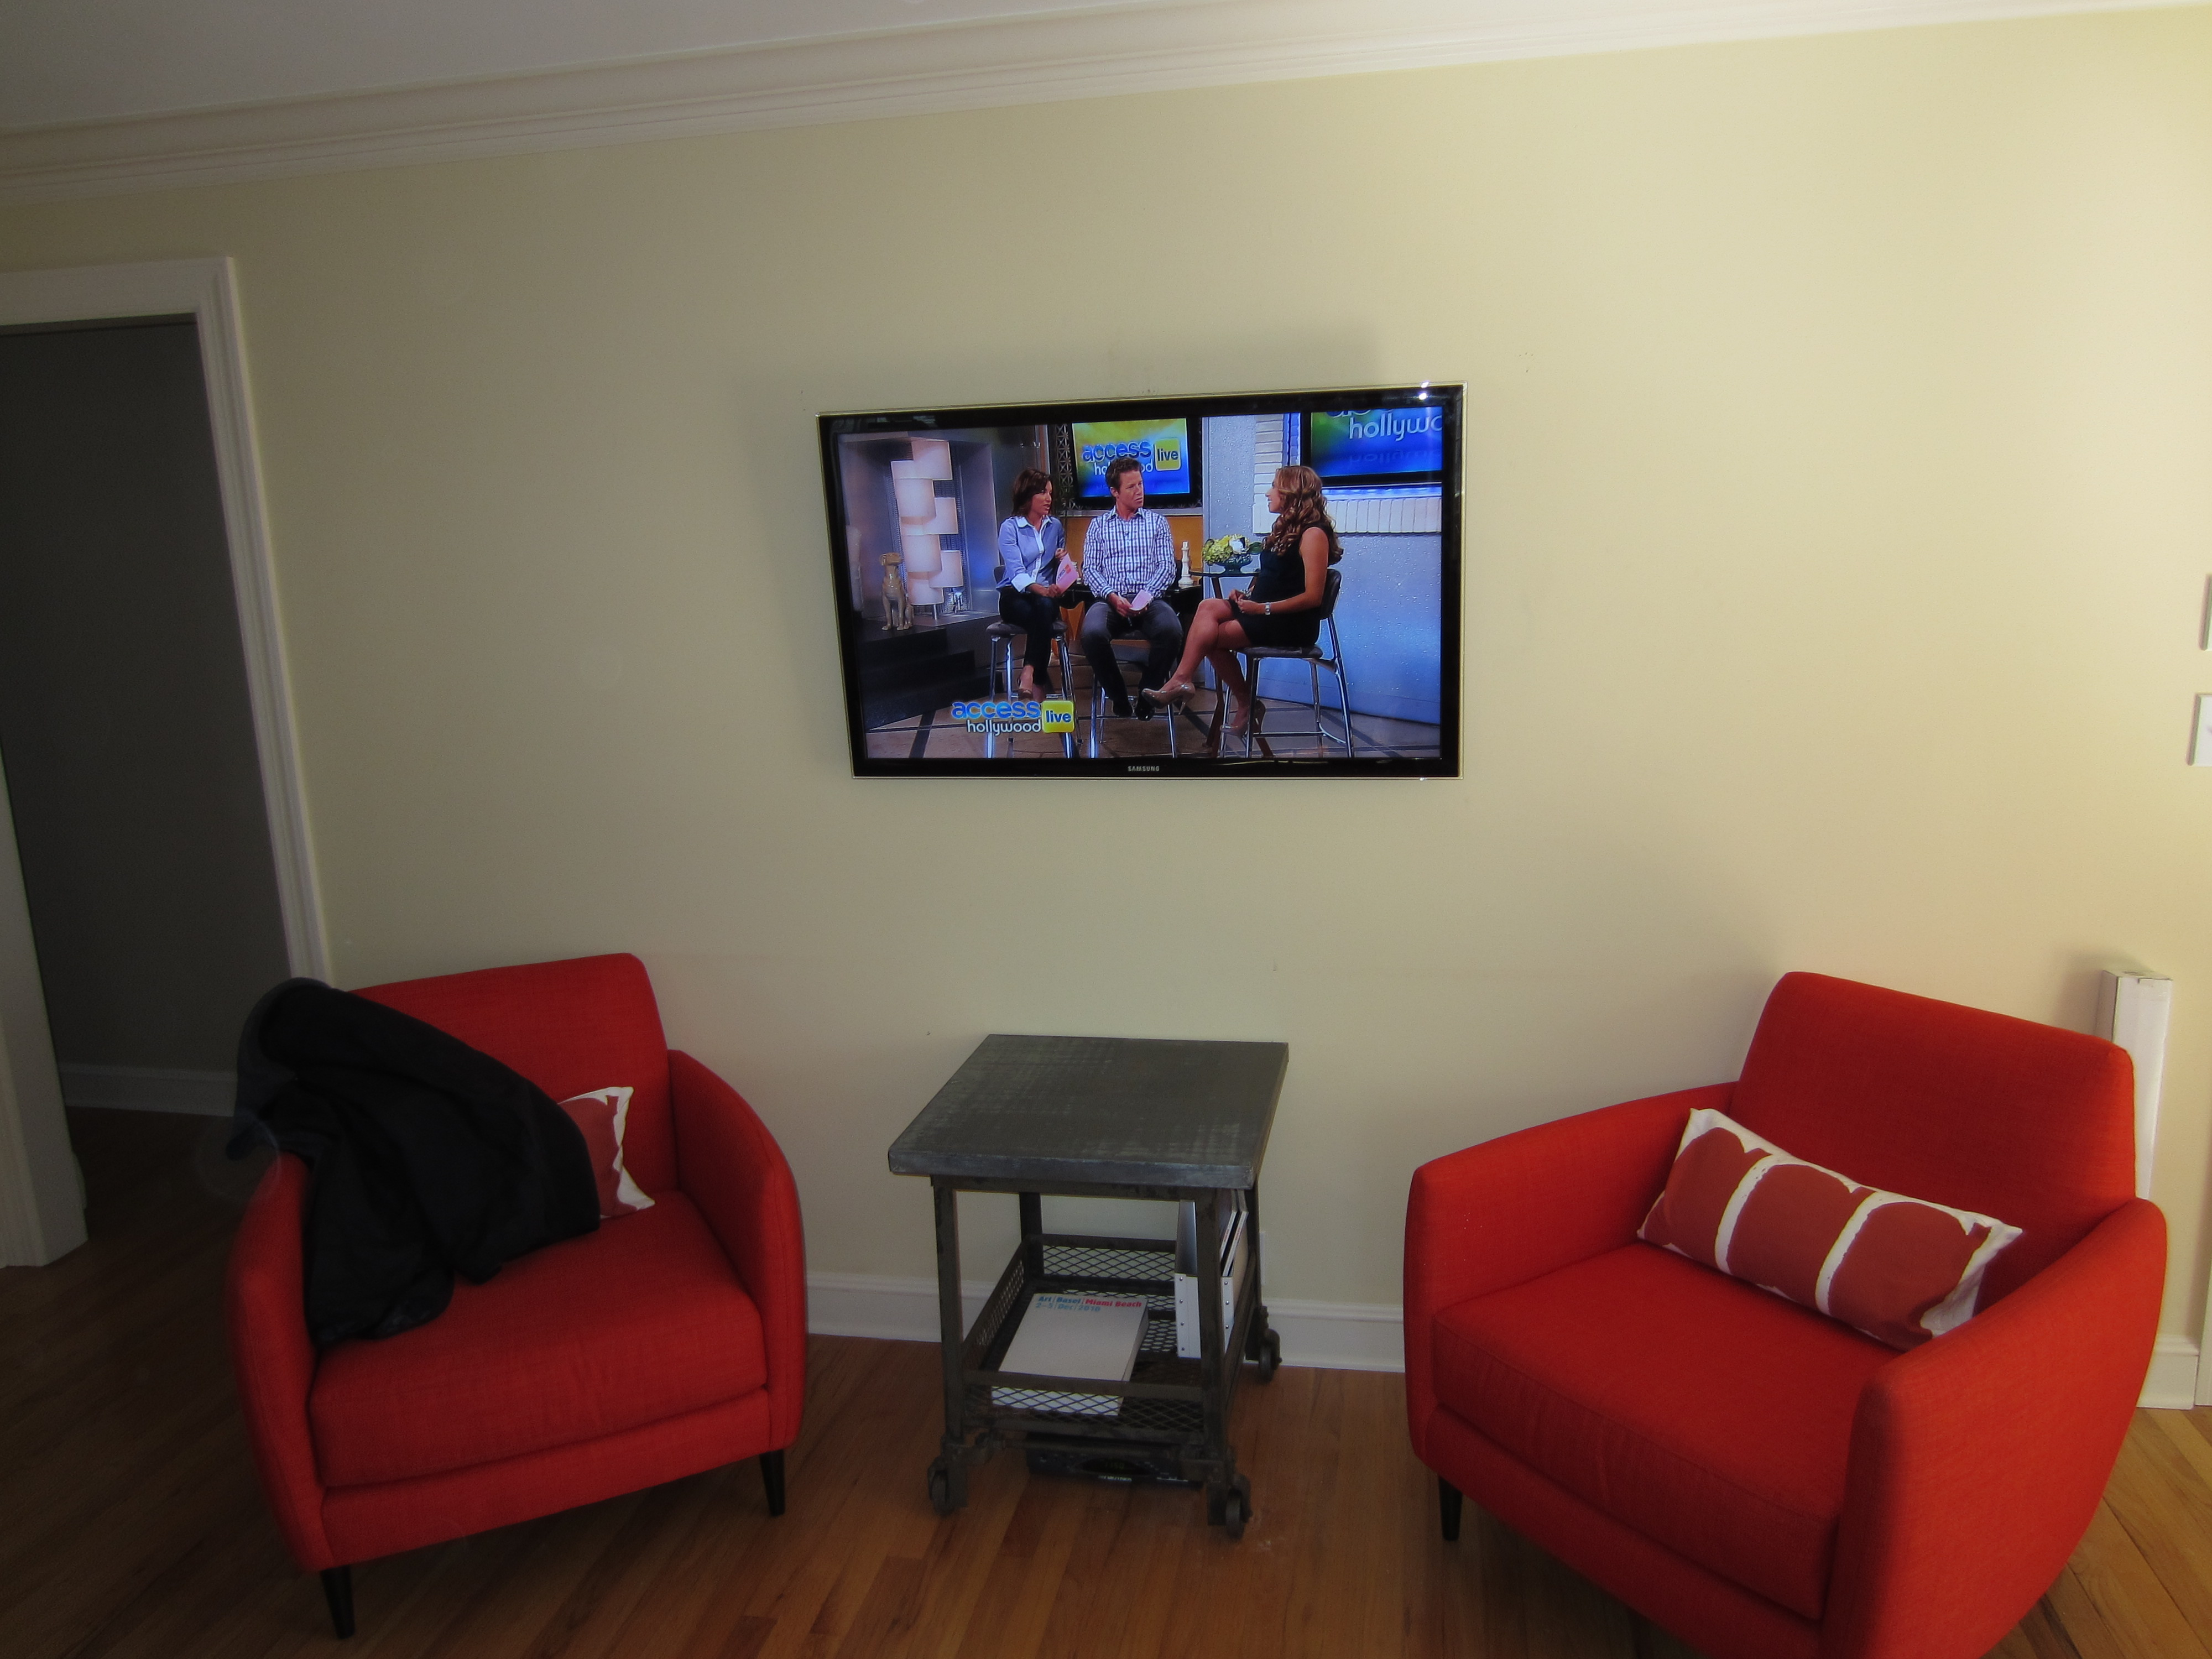 Hide Tv In Wall Blog Home Theater Installation Connecticuts Finest Home